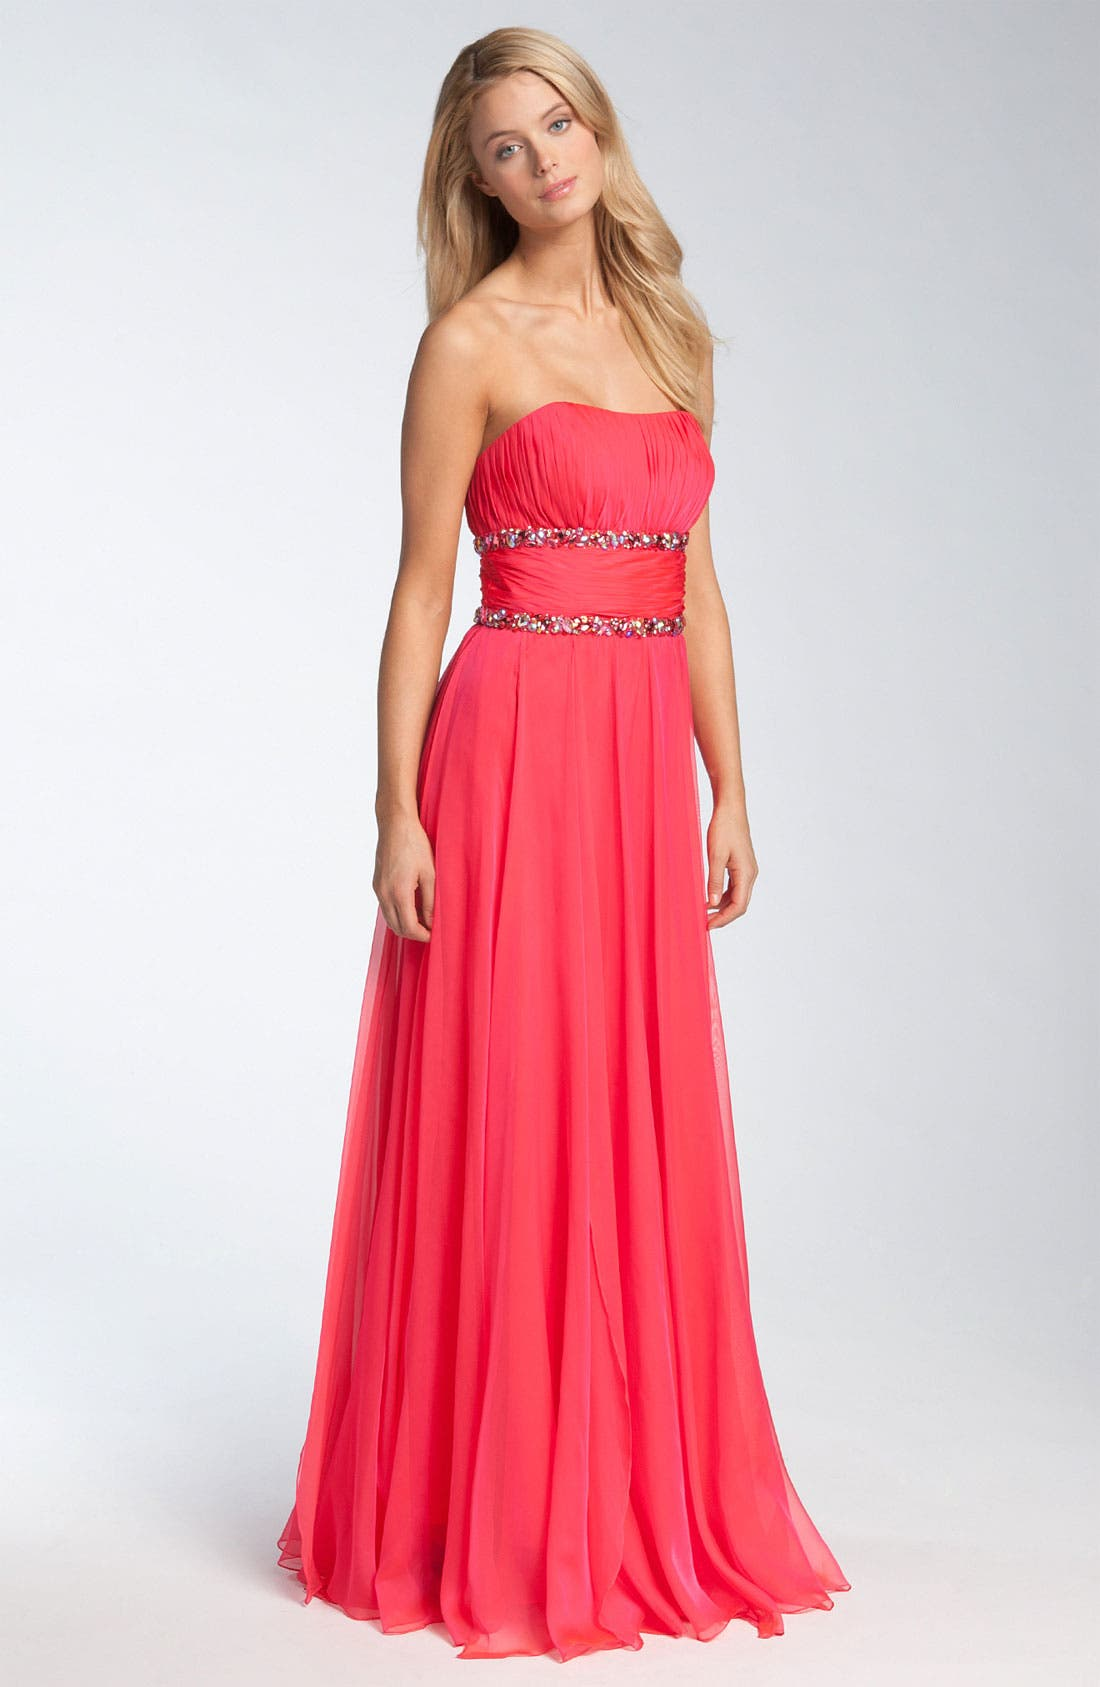 Main Image - La Femme Fashions Strapless Beaded Trim Gown